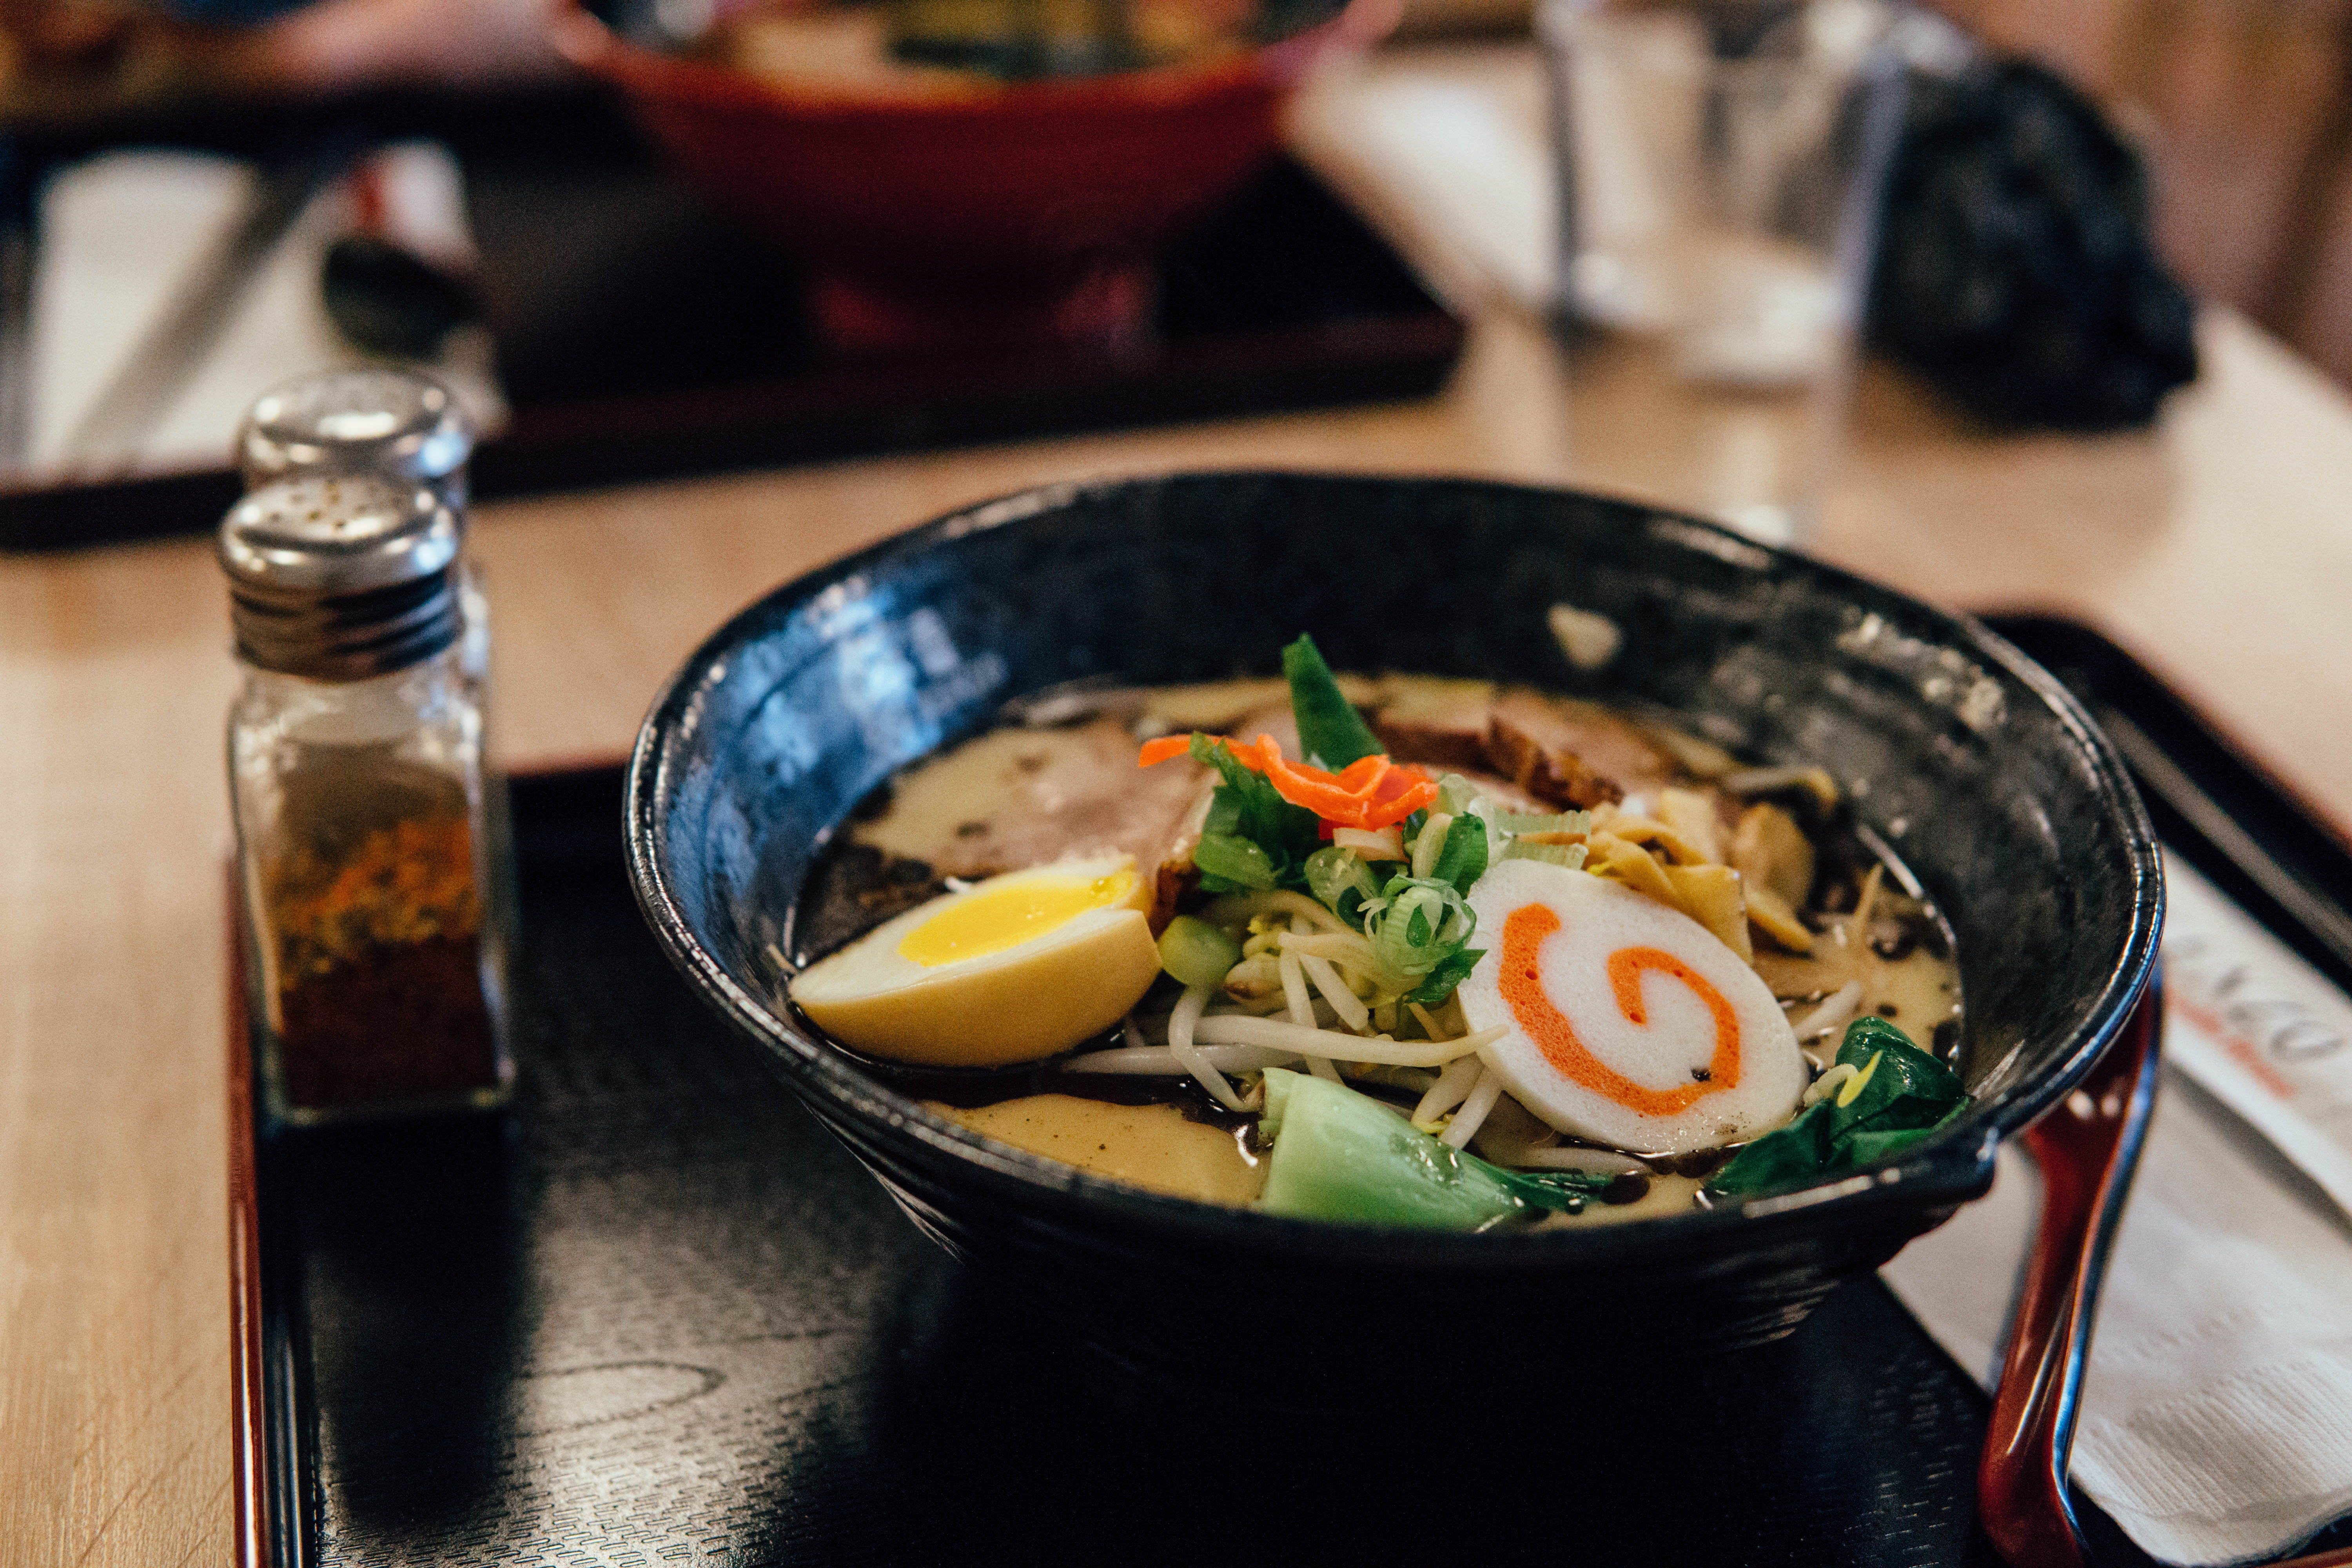 focus photography of ramen in bowl with condiment shakers